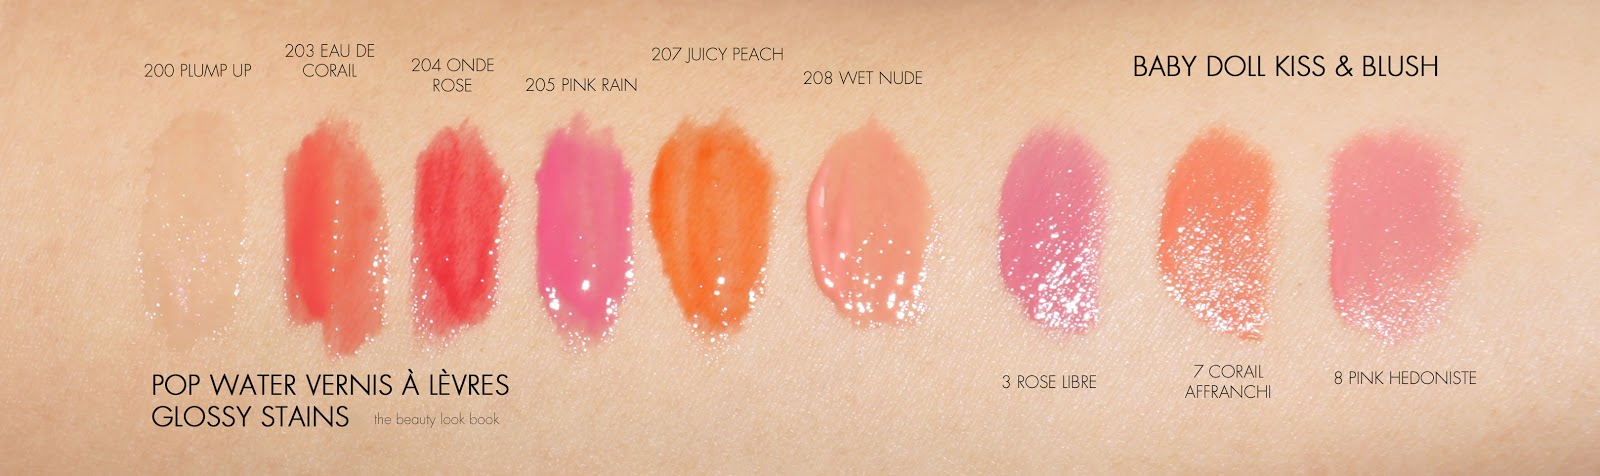 Yves Saint Laurent Pop Water Collection New Glossy Stains